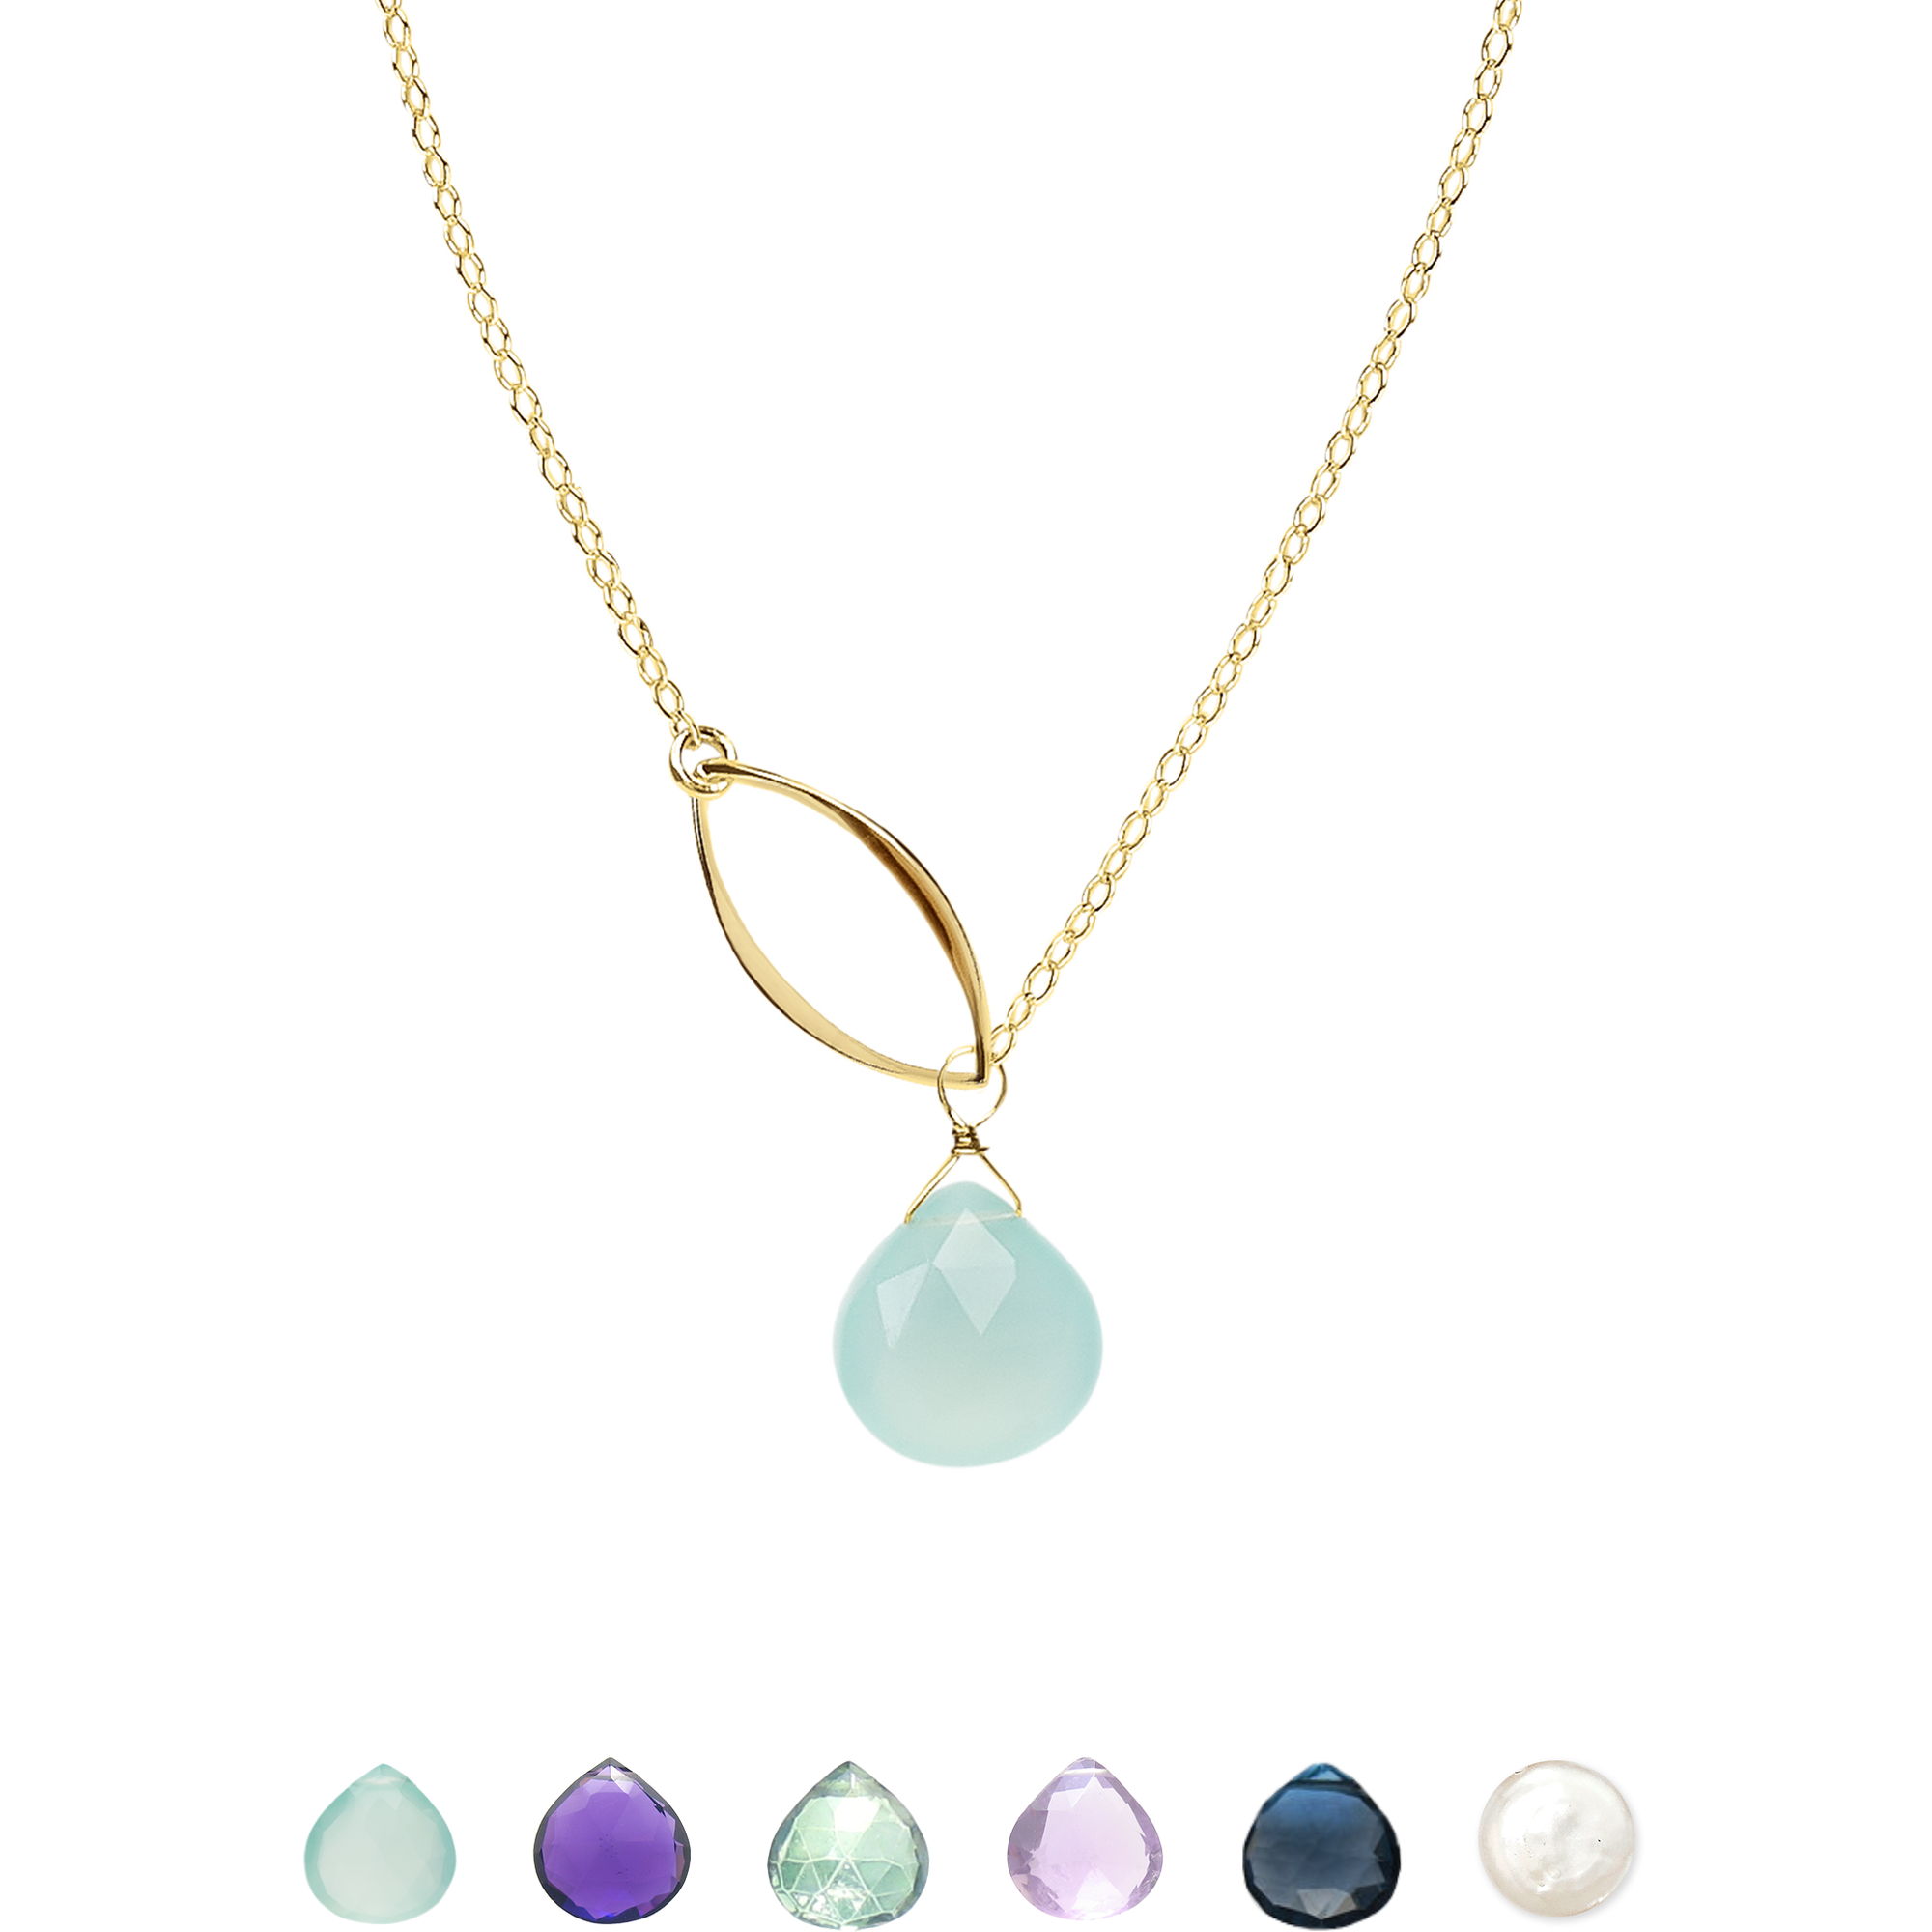 Ella Gold Single Leaf Necklace with Gemstone